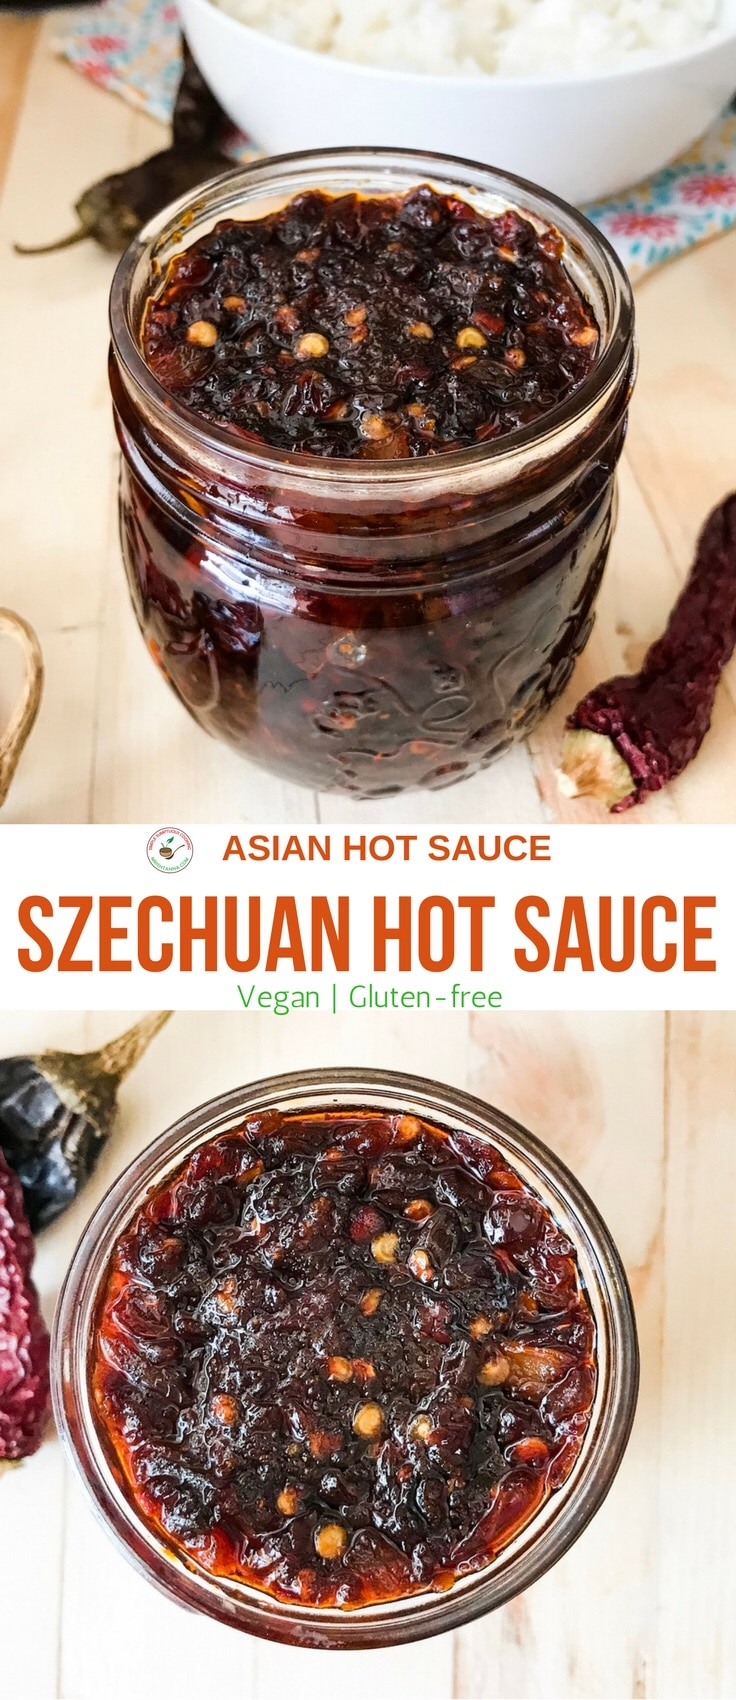 A jar is filled with Szechuan hot sauce is on the table